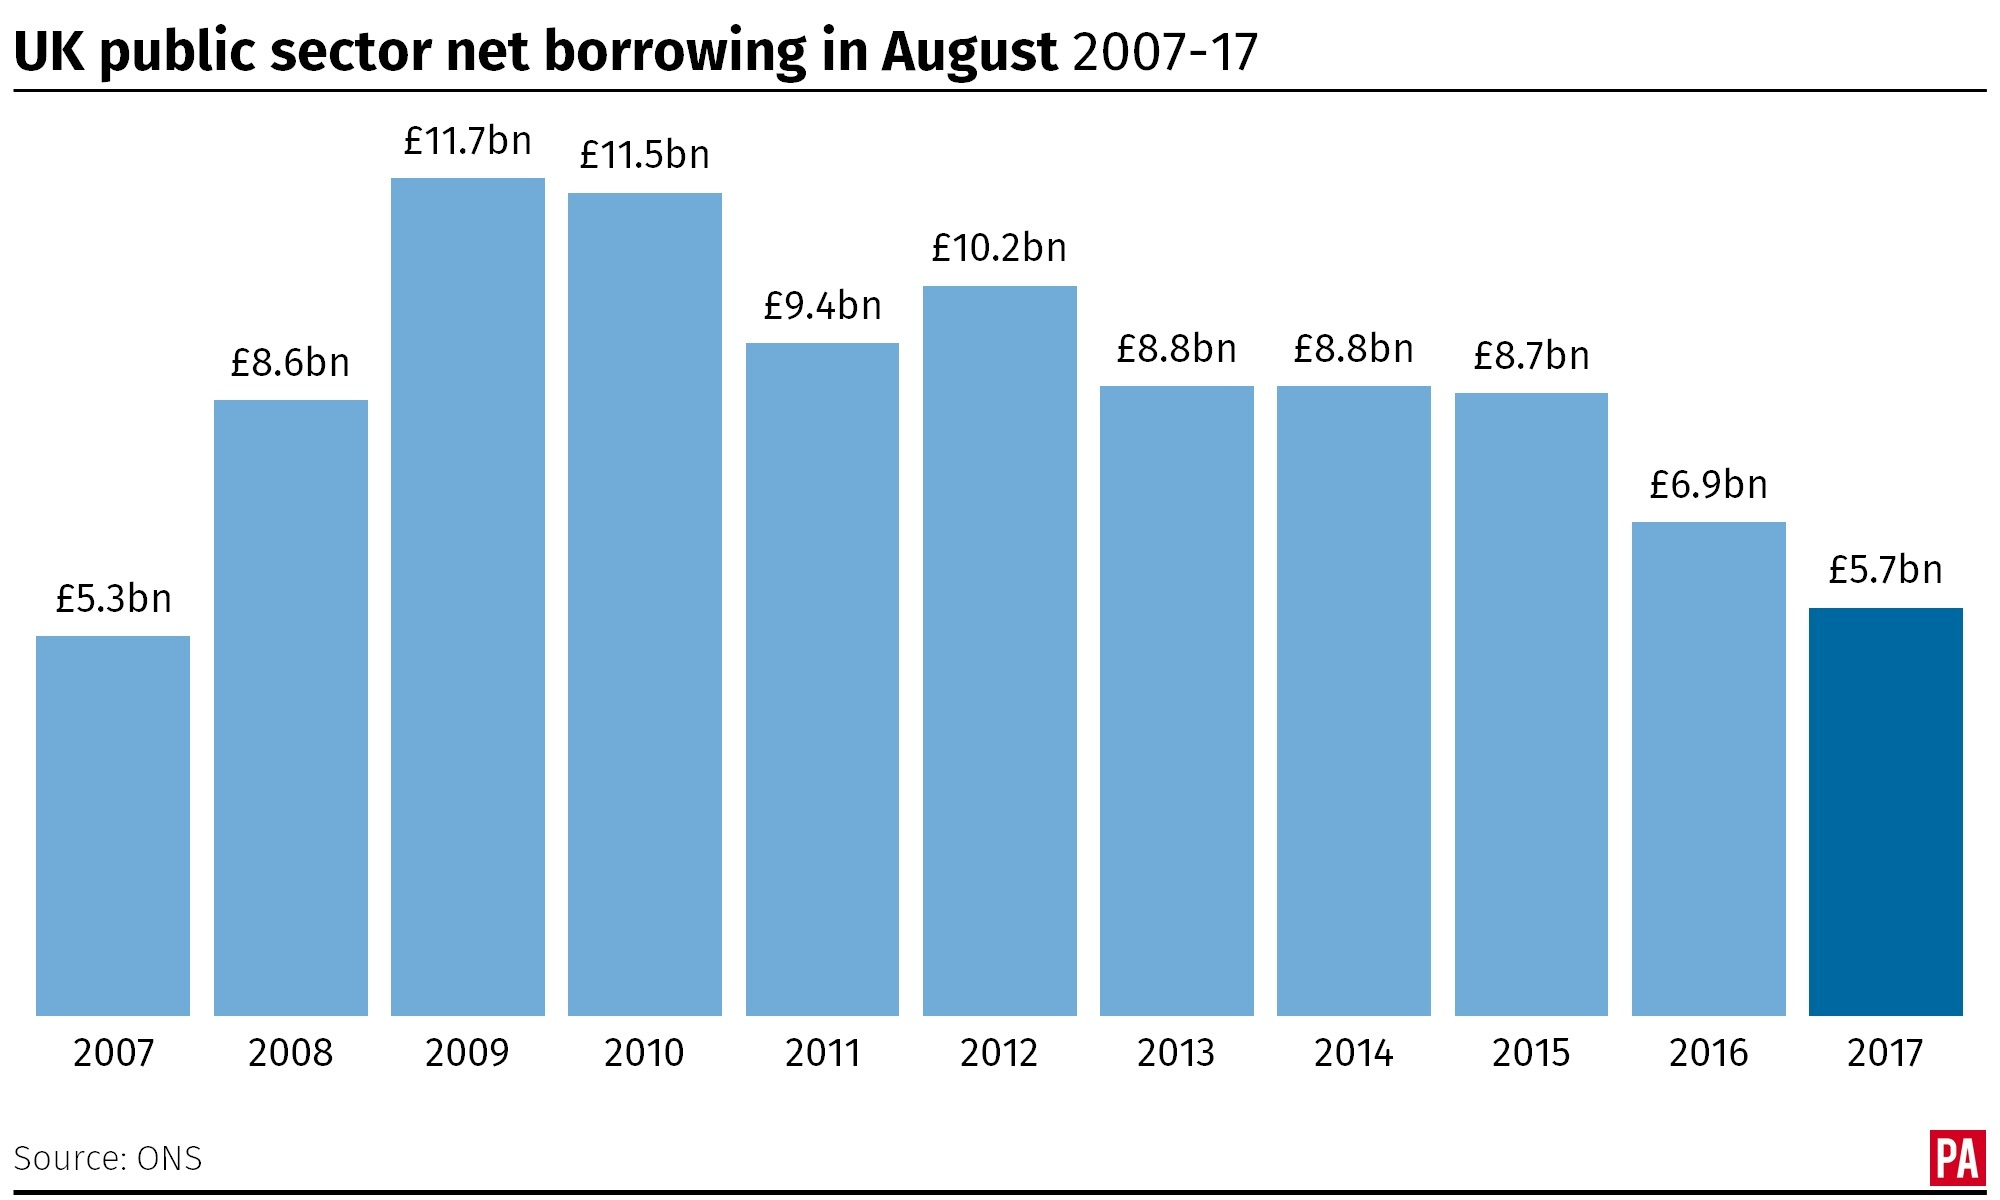 UK public sector net borrowing in August, 2007-17